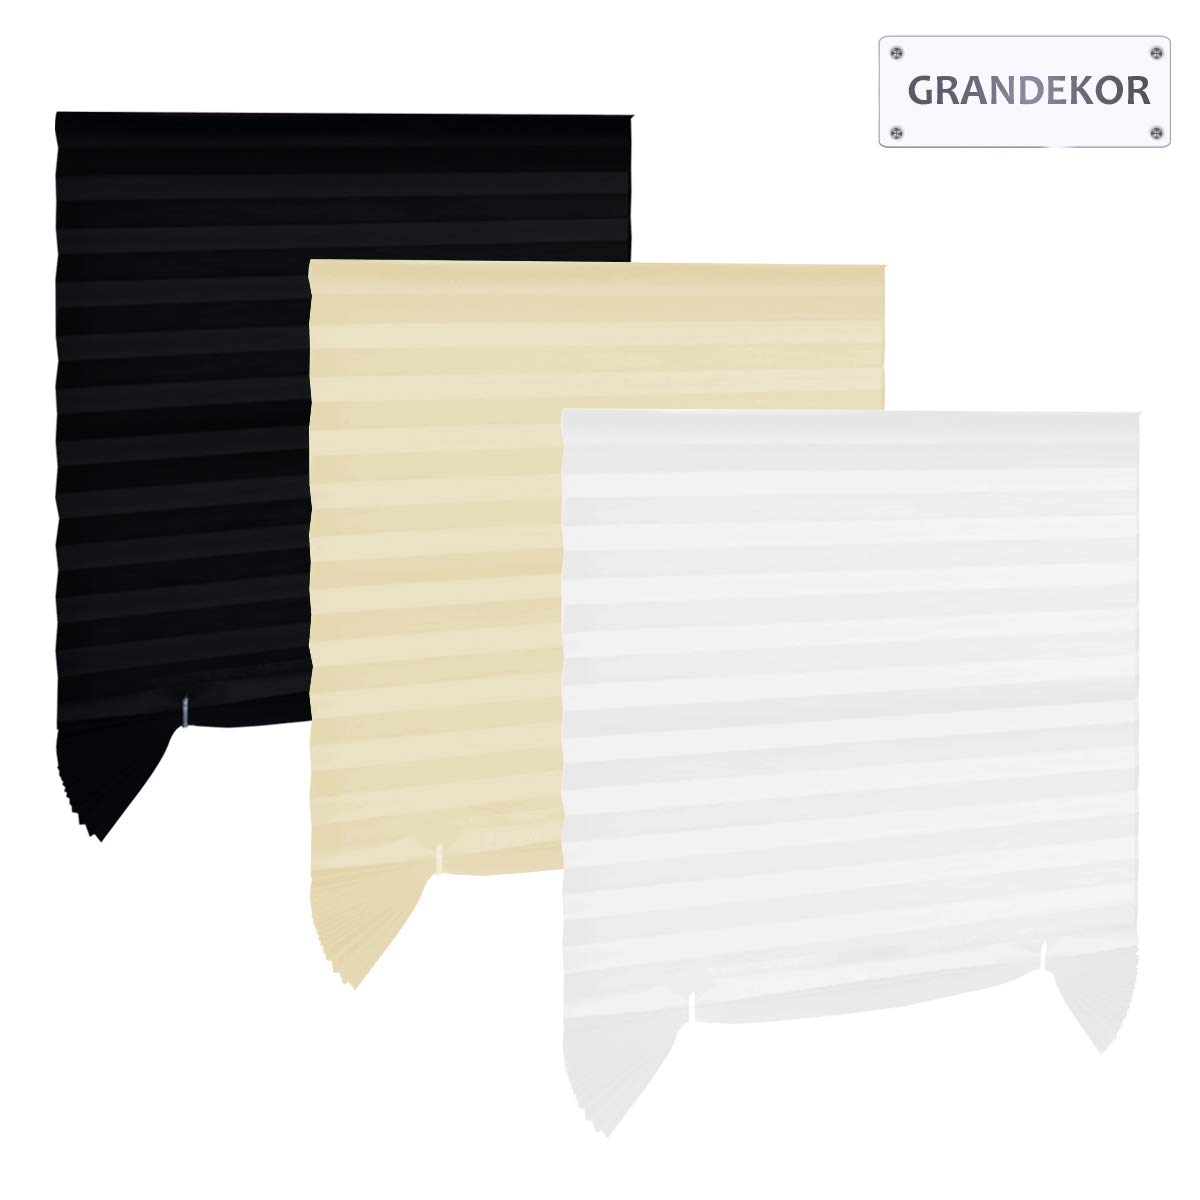 Grandekor Pleated Blind Instant Temporary Polyester Blinds 110x182cm(WxD)-Black-(1-Pack)-Cuttable Pleated Shade with Stick No Drilling for Security, Privacy Protection Dedeco